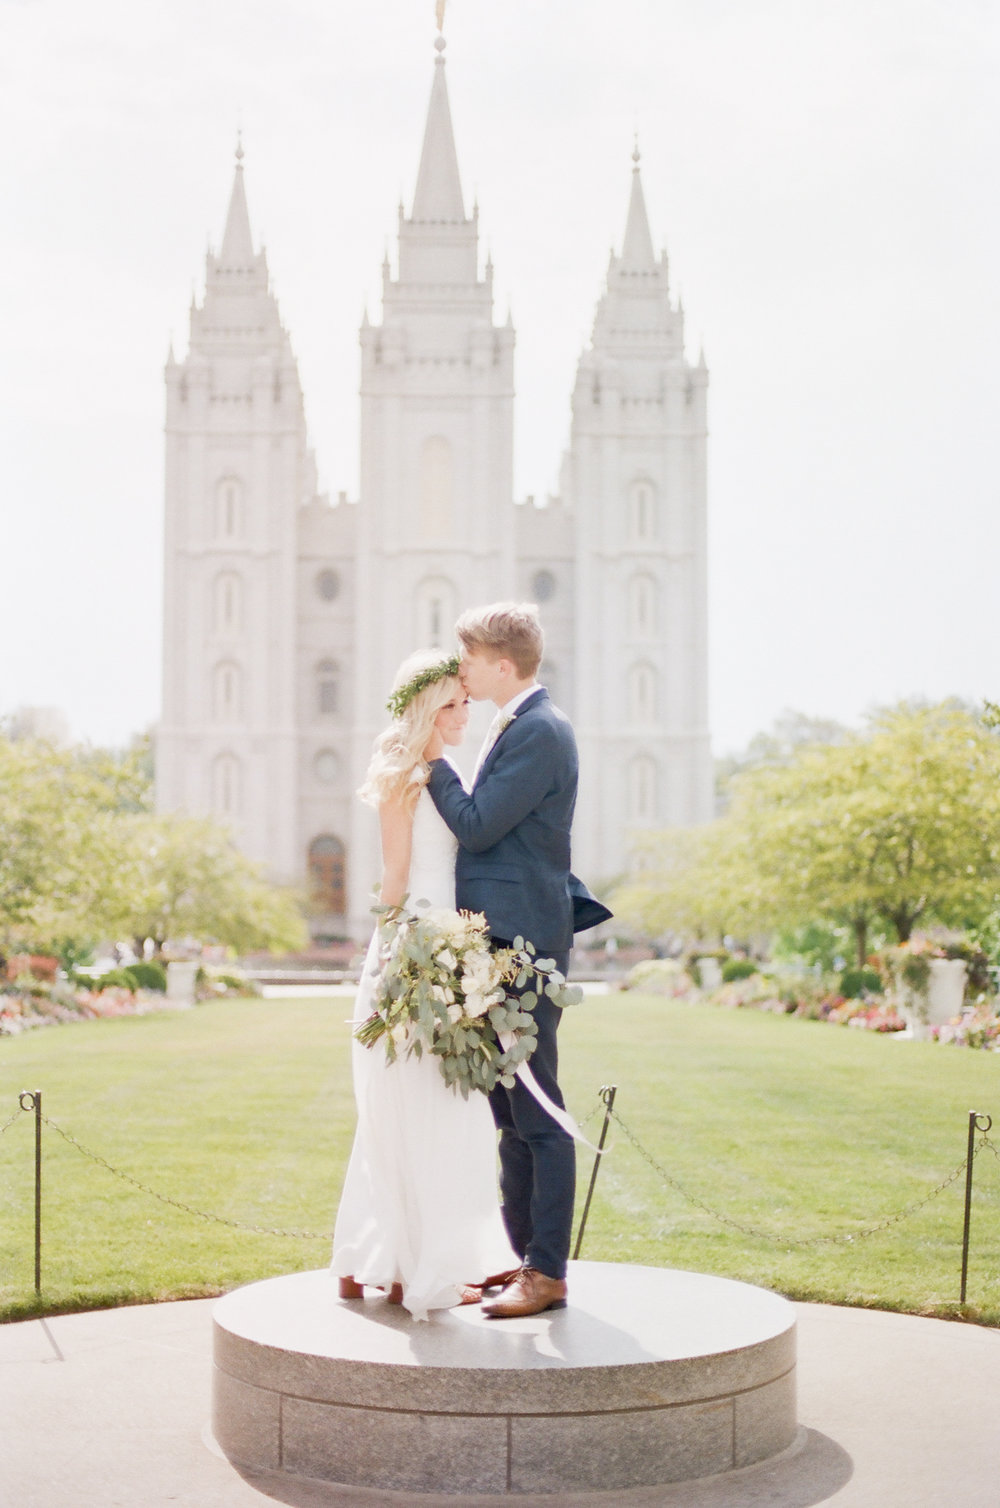 Wynona Benson Photography - Jaleisa & Logan Romantic Elegant Utah Wedding00056.jpg